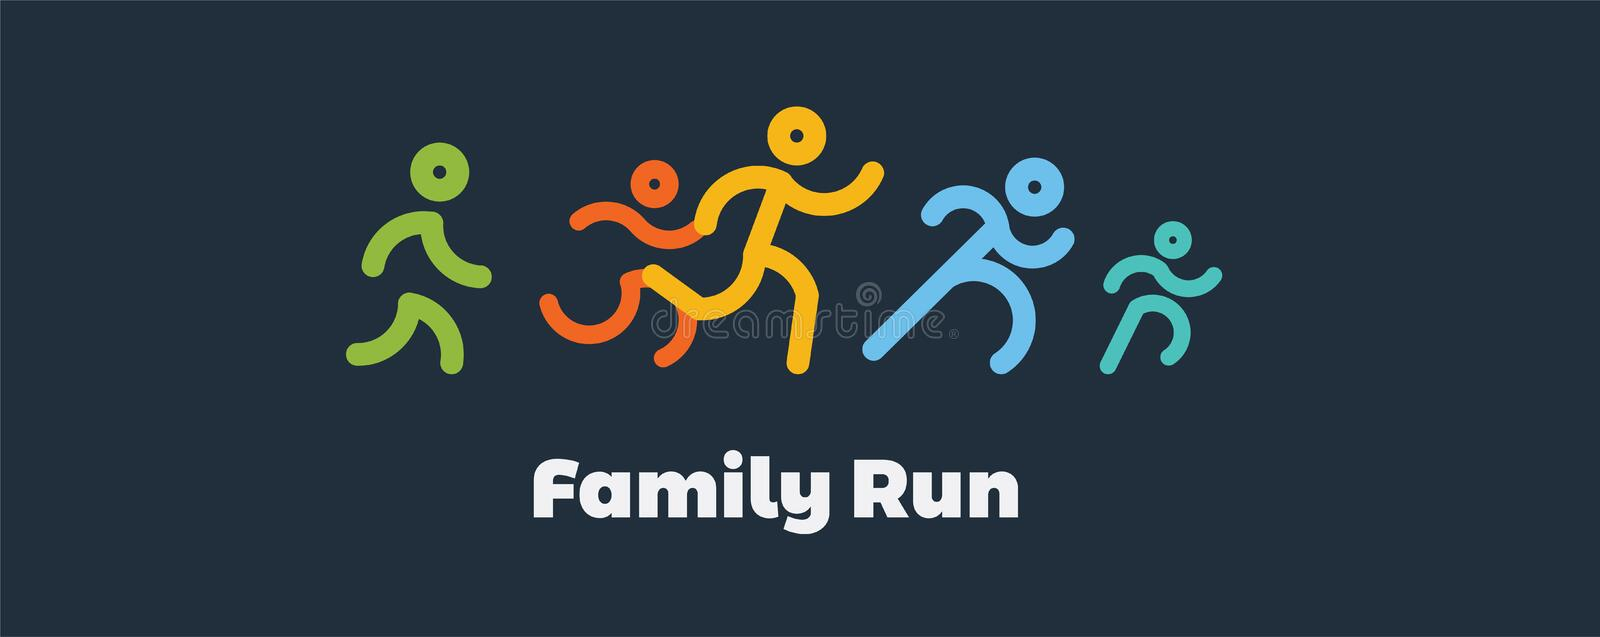 Family run race. colorful Runners.logo for running competition. vector illustration royalty free illustration